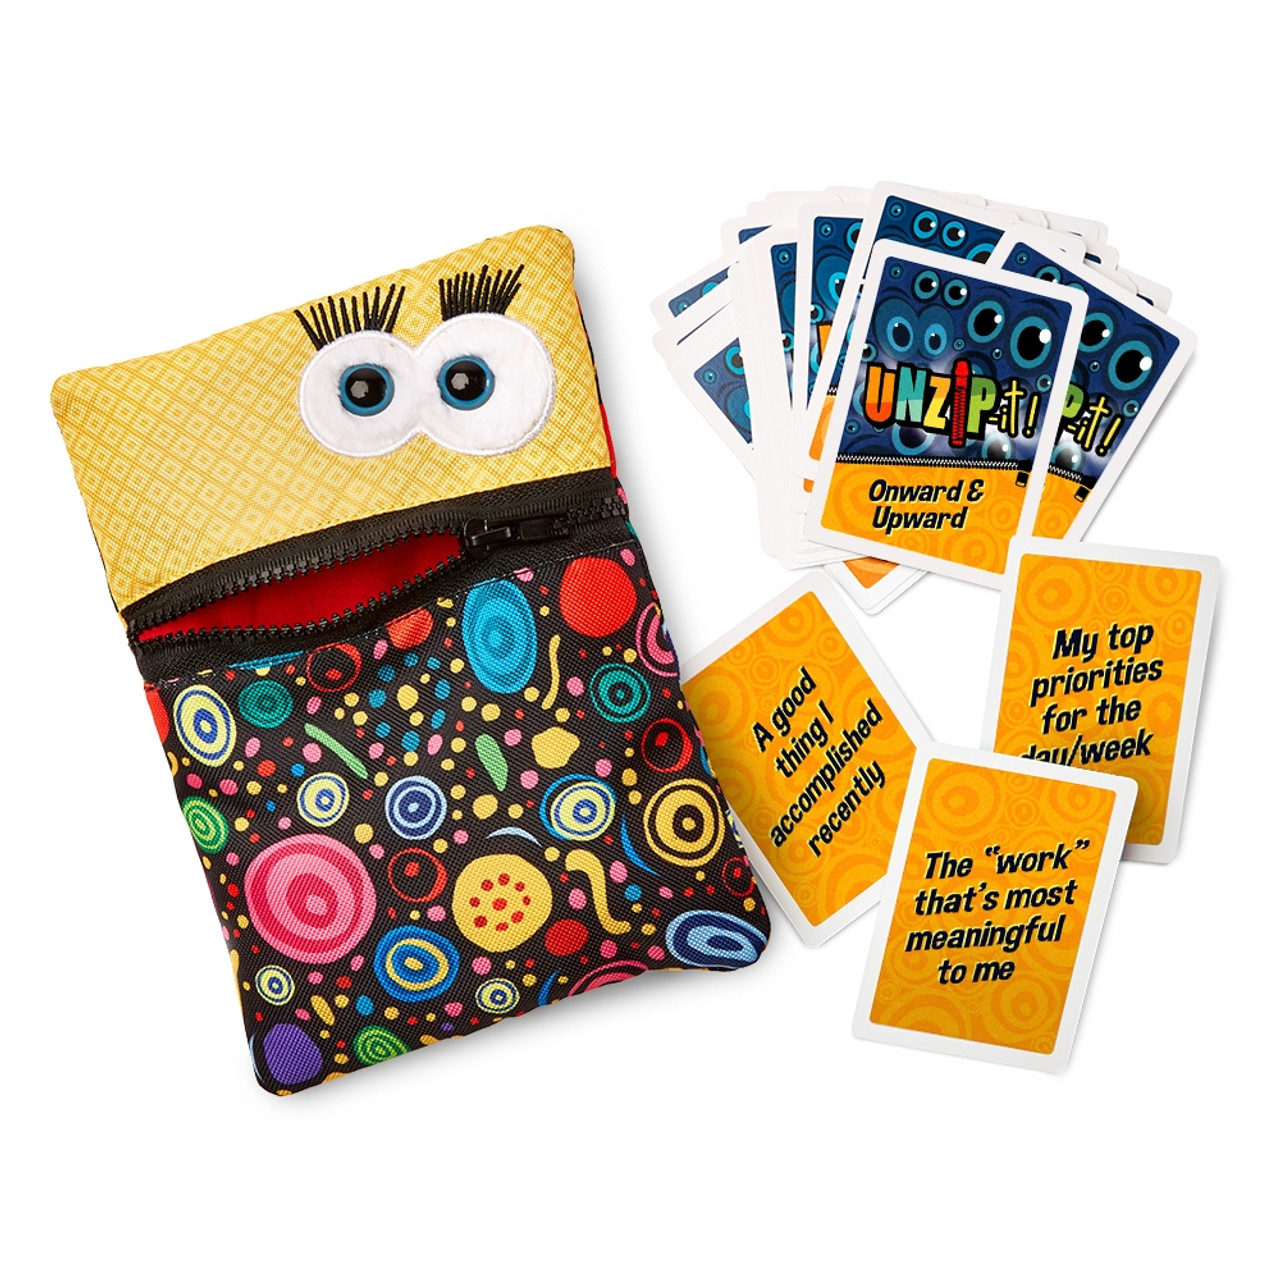 UNZiP-it! with Onward & Upward Card Deck, set